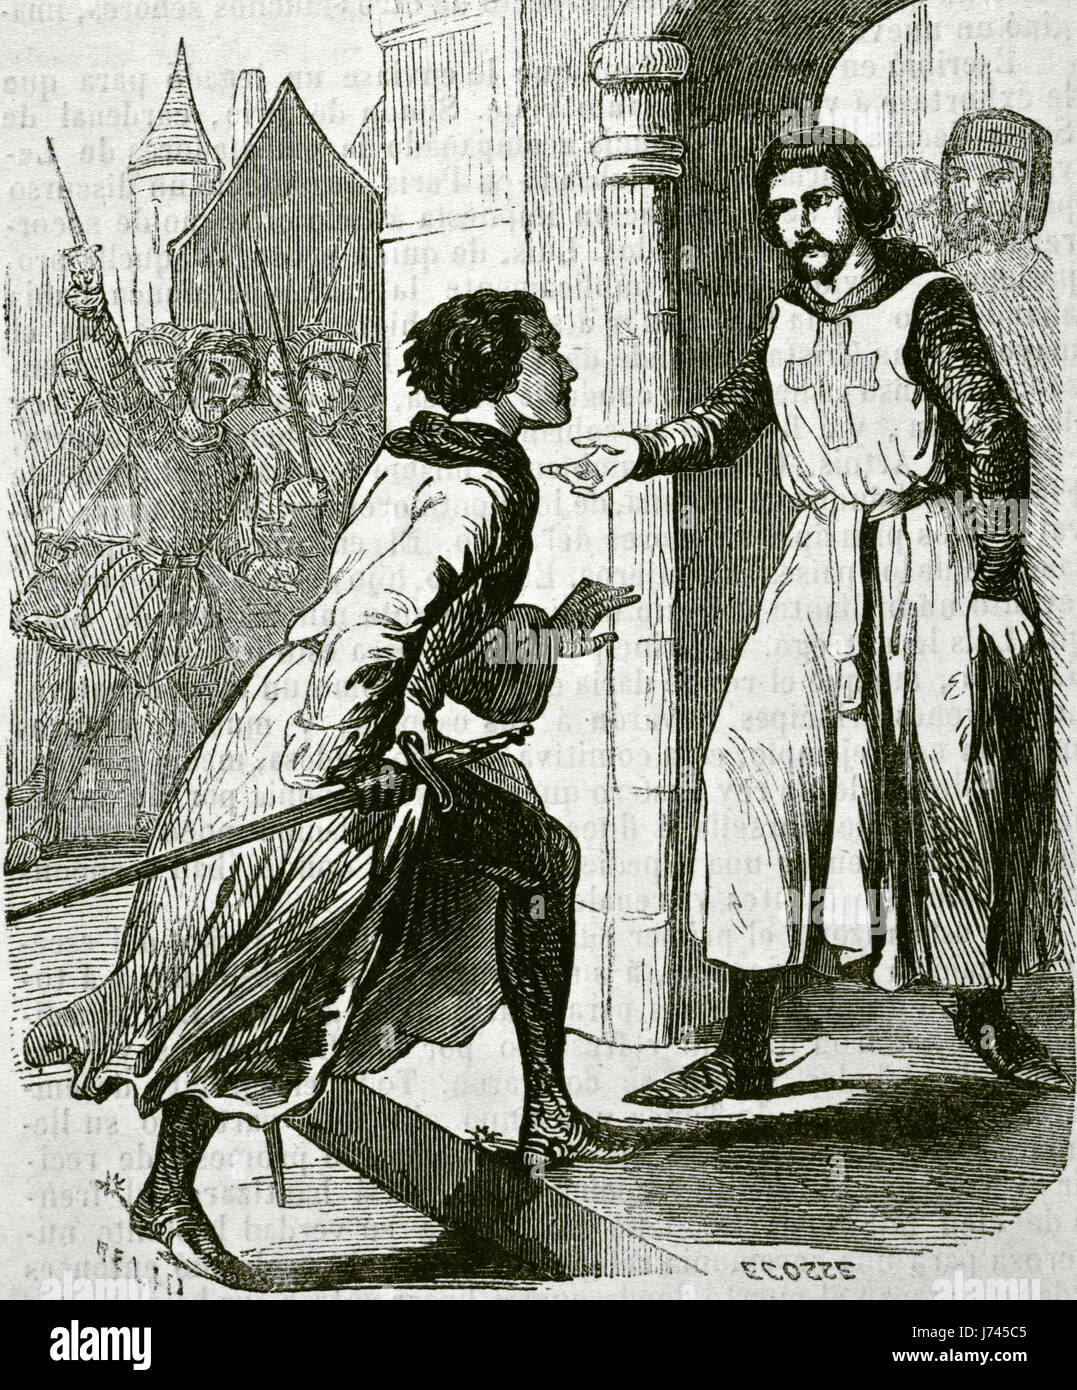 Philip IV the Fair (1268-1314), King of France and Navarre by his marriage to Joan  I of Navarre in 1284, takes - Stock Image